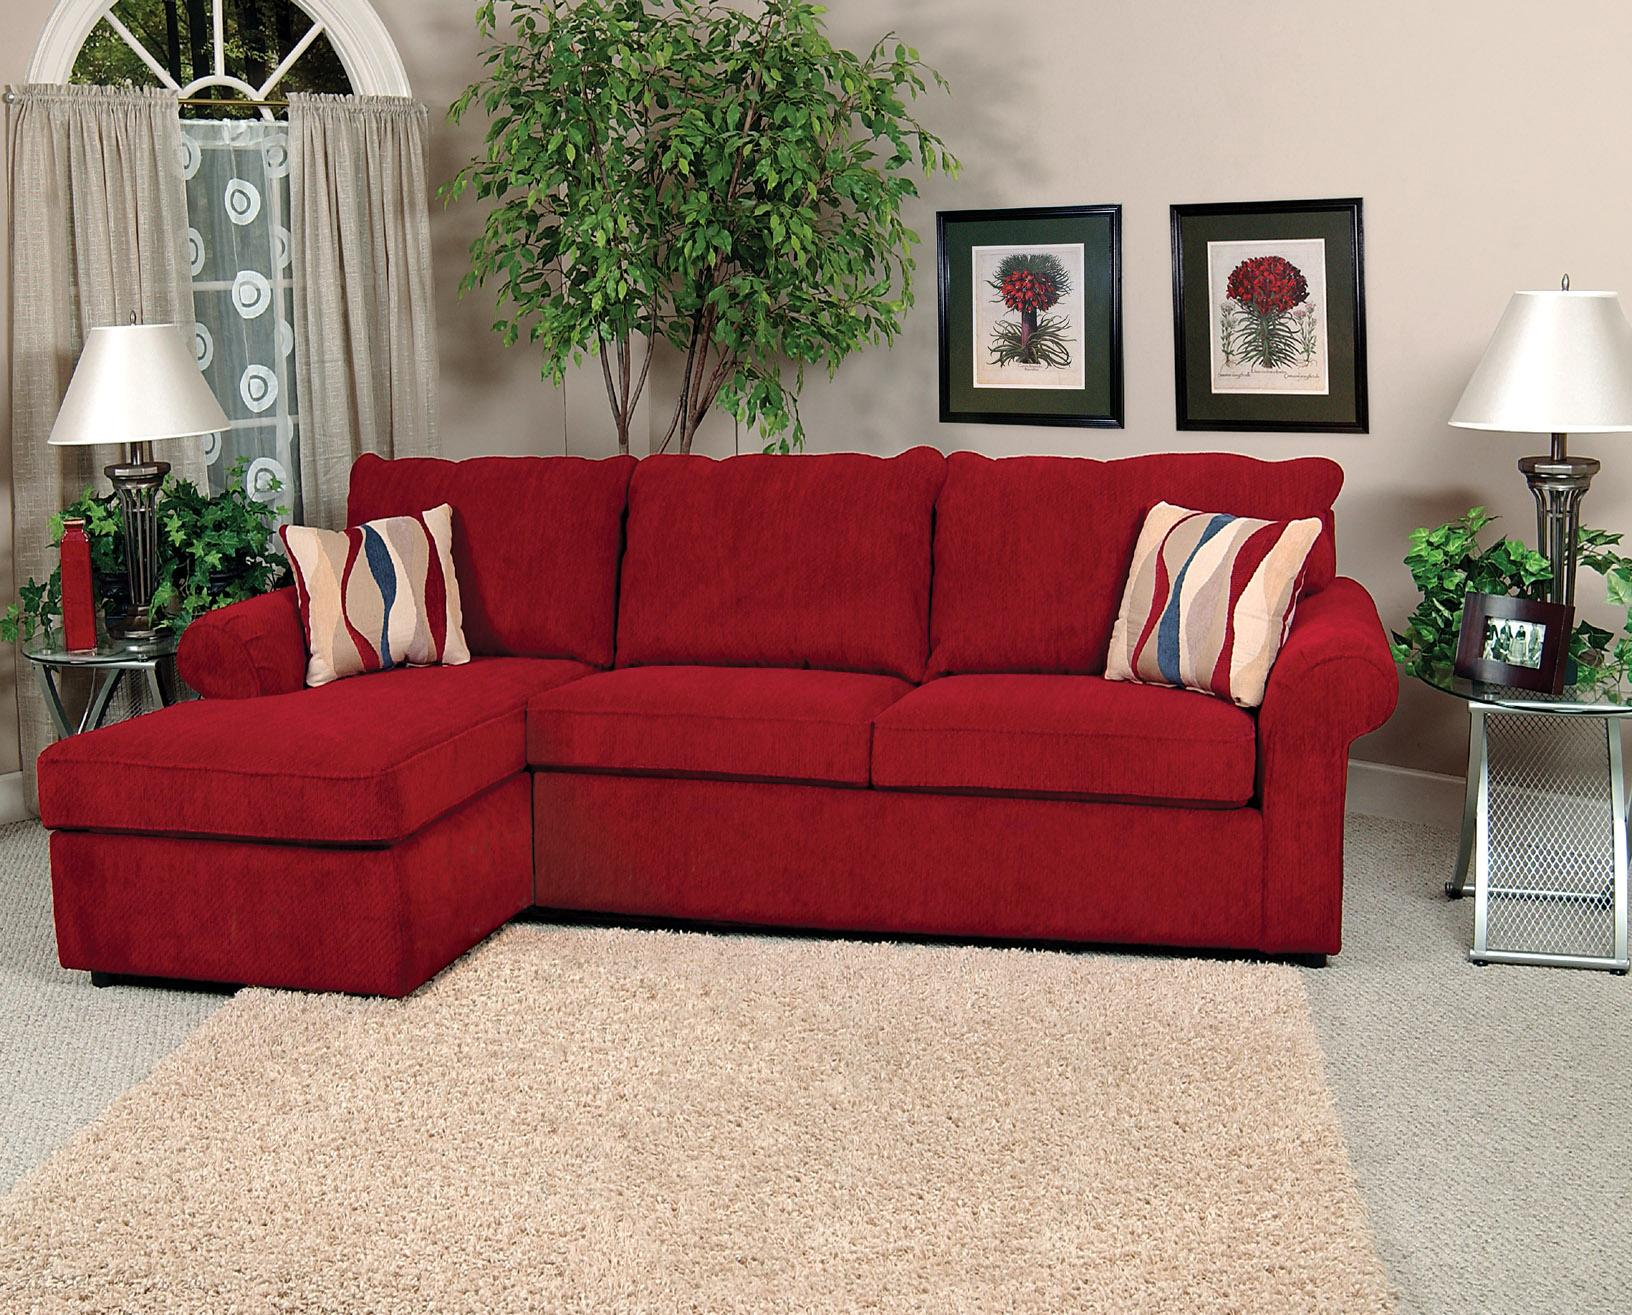 3 sided sectional sofa trent leather queen sleeper england malibu seat left side chaise fashion